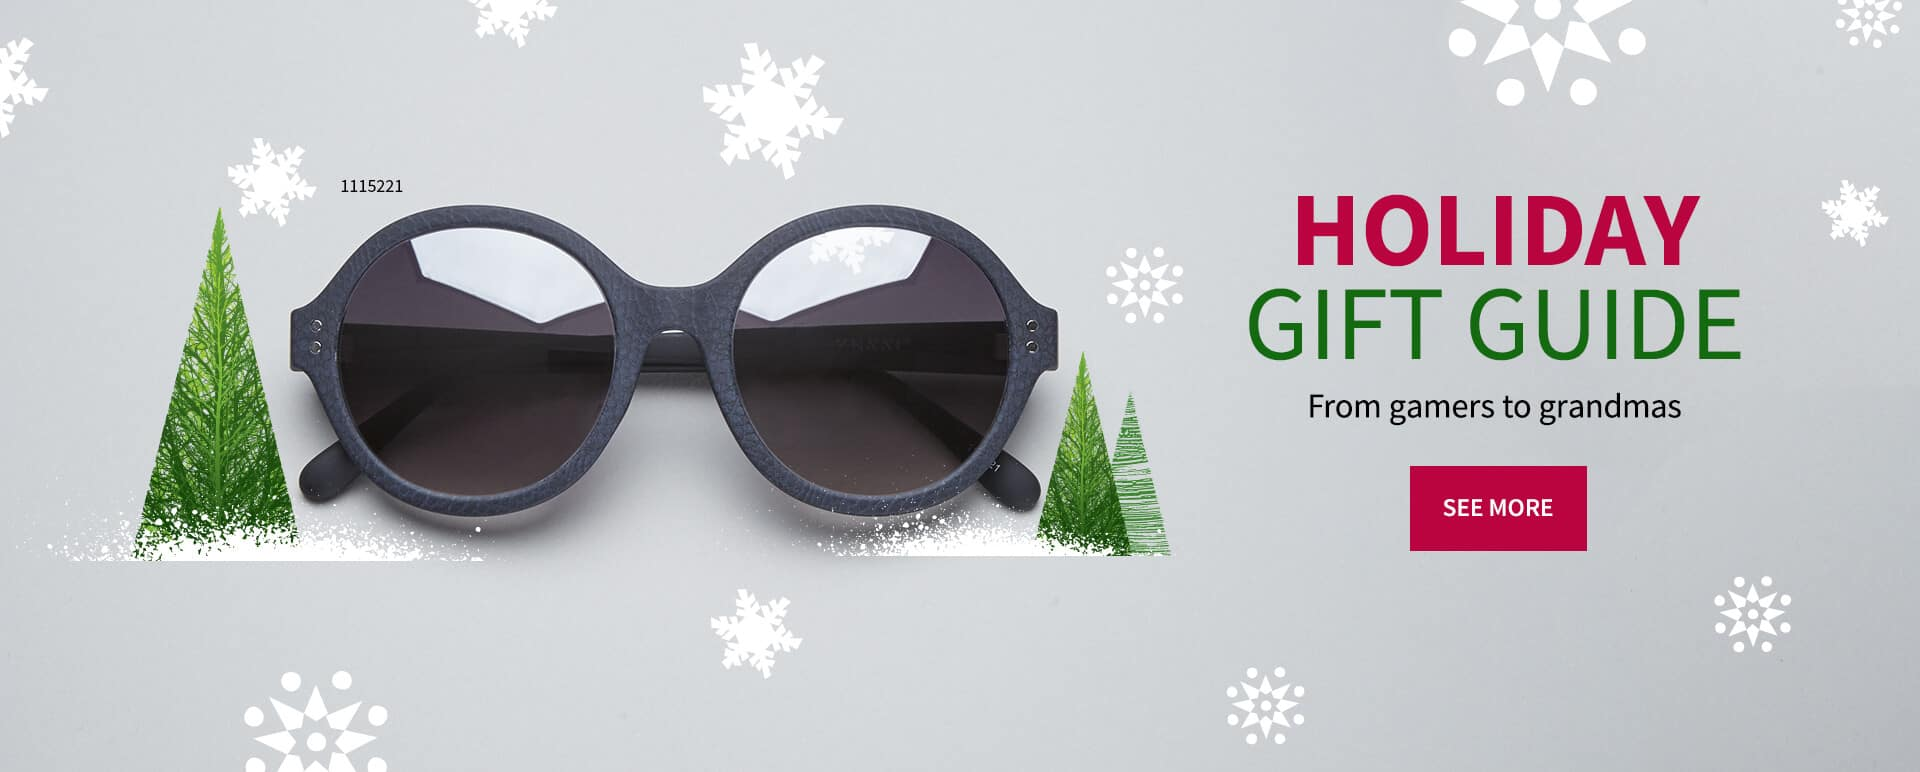 Holiday Gift Guide | Zenni Optical